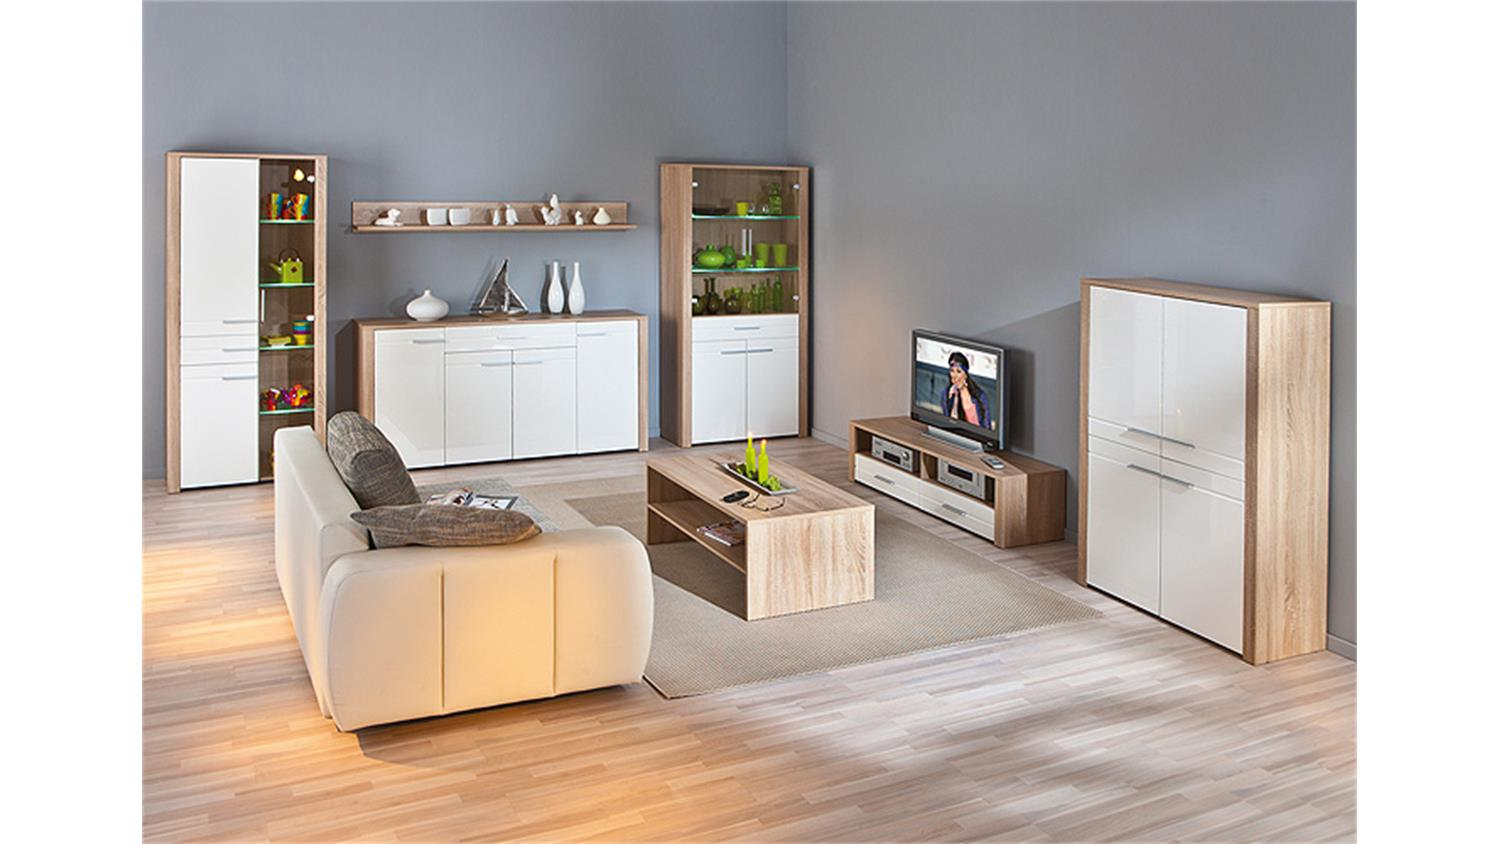 highboard absoluto sonoma eiche wei hochglanz. Black Bedroom Furniture Sets. Home Design Ideas